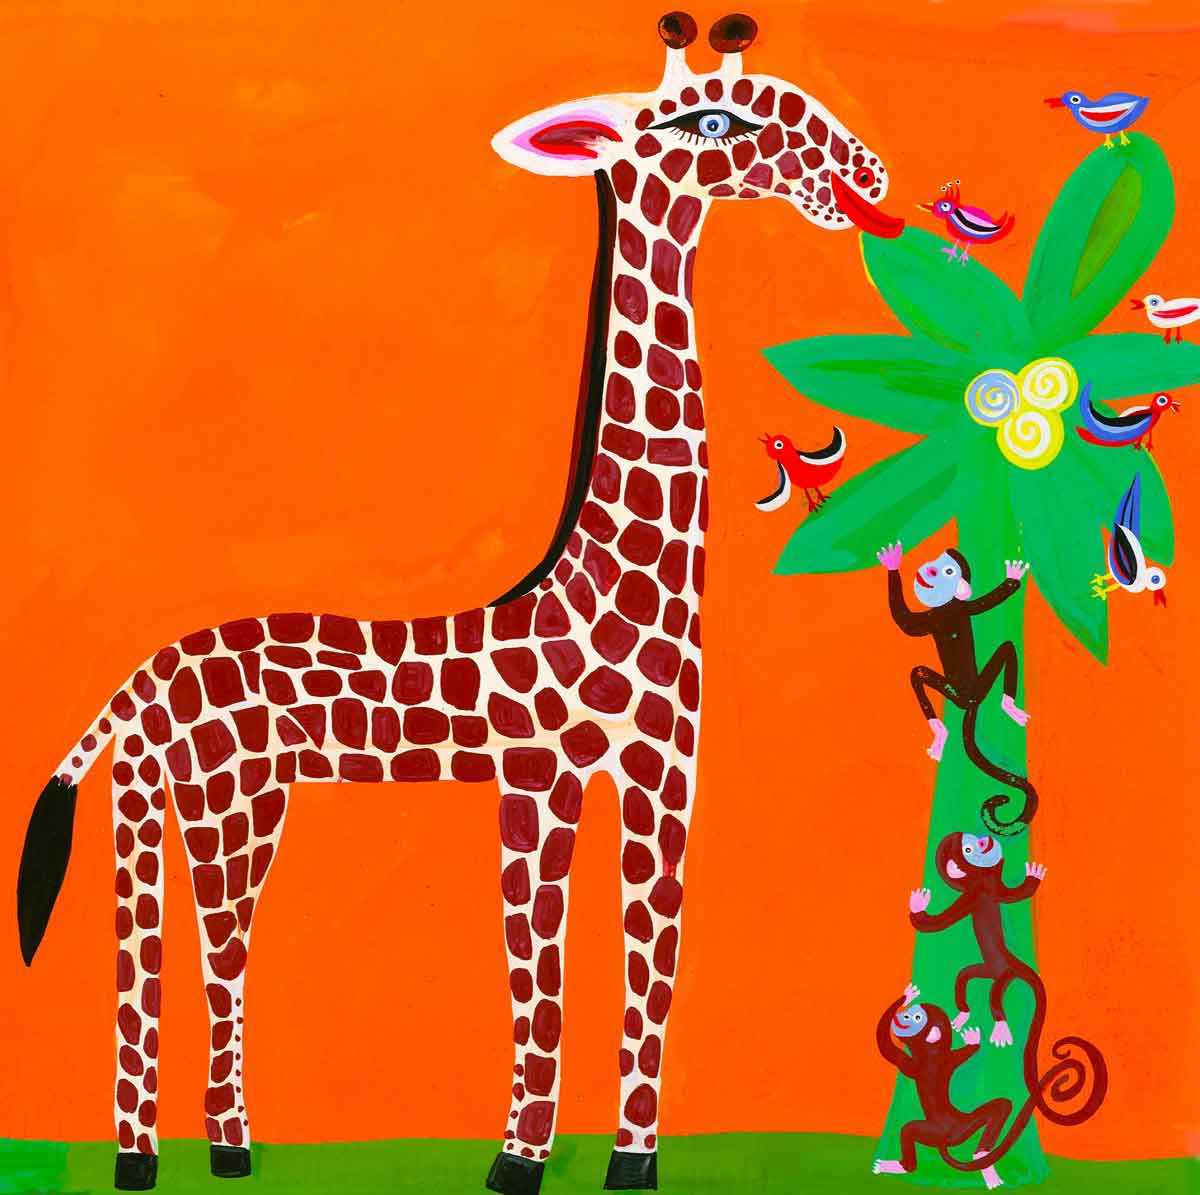 Illustration-Giraffe-&-monkeys